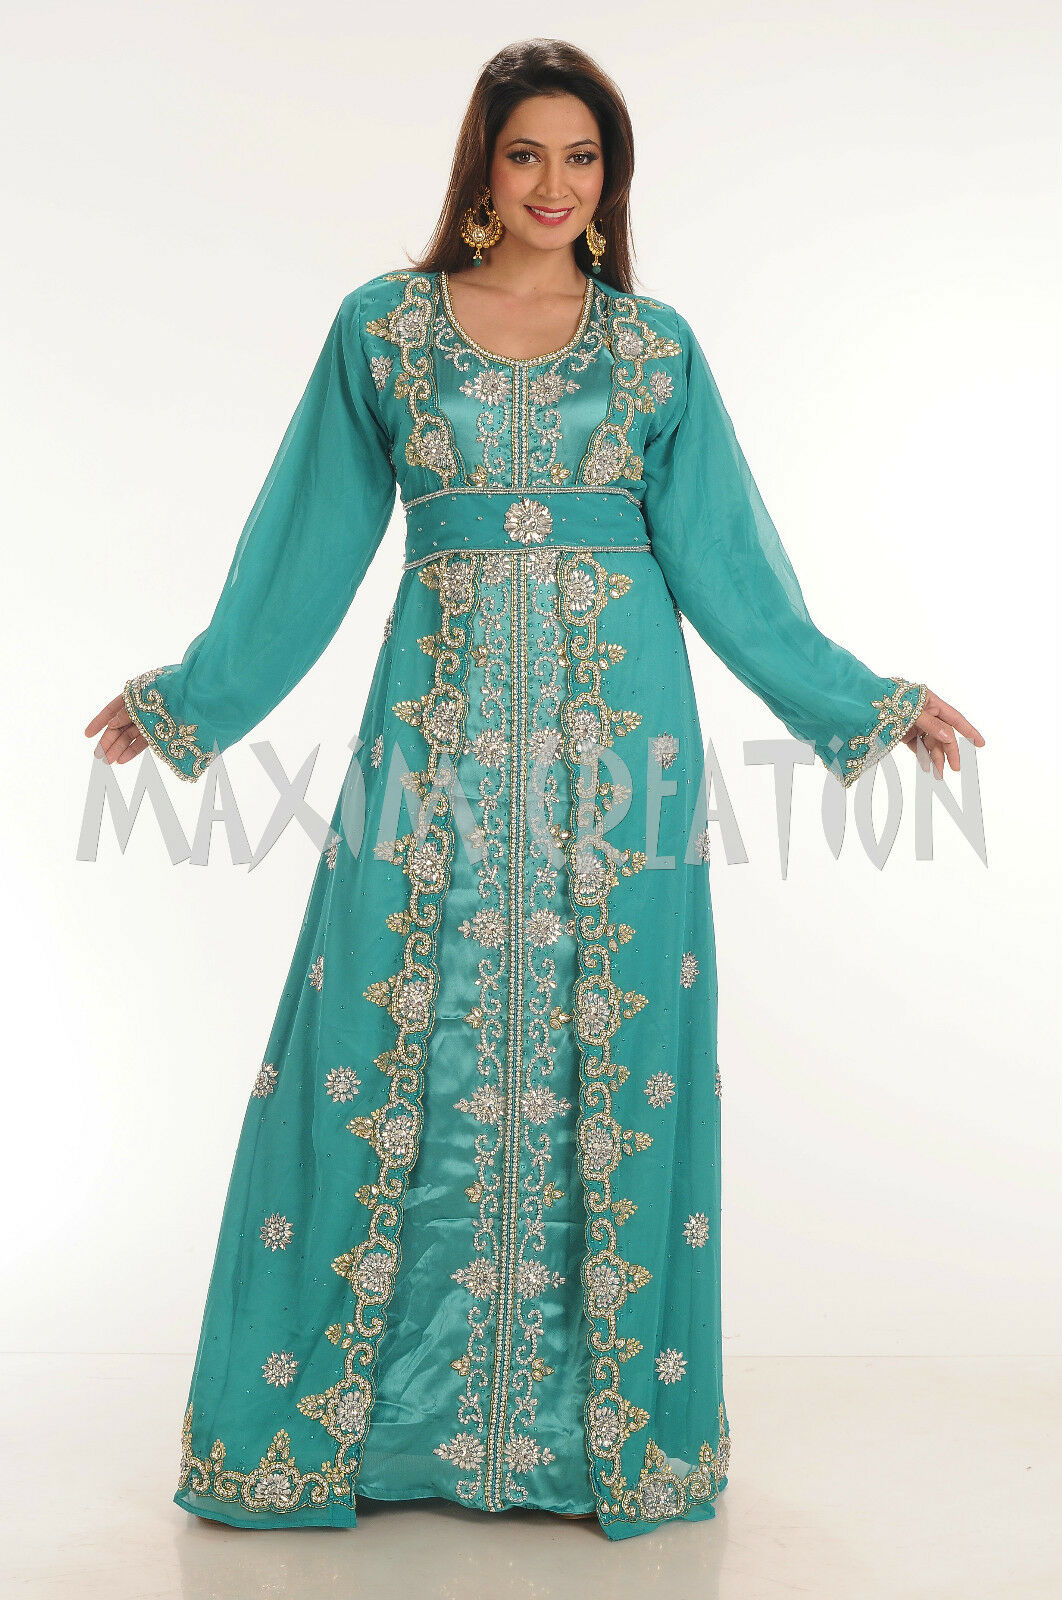 EXCLUSIVE FANCY JILBAB ARABIAN WEDDING GOWN TAKSHITA MODERN THOBE DRESS 4343